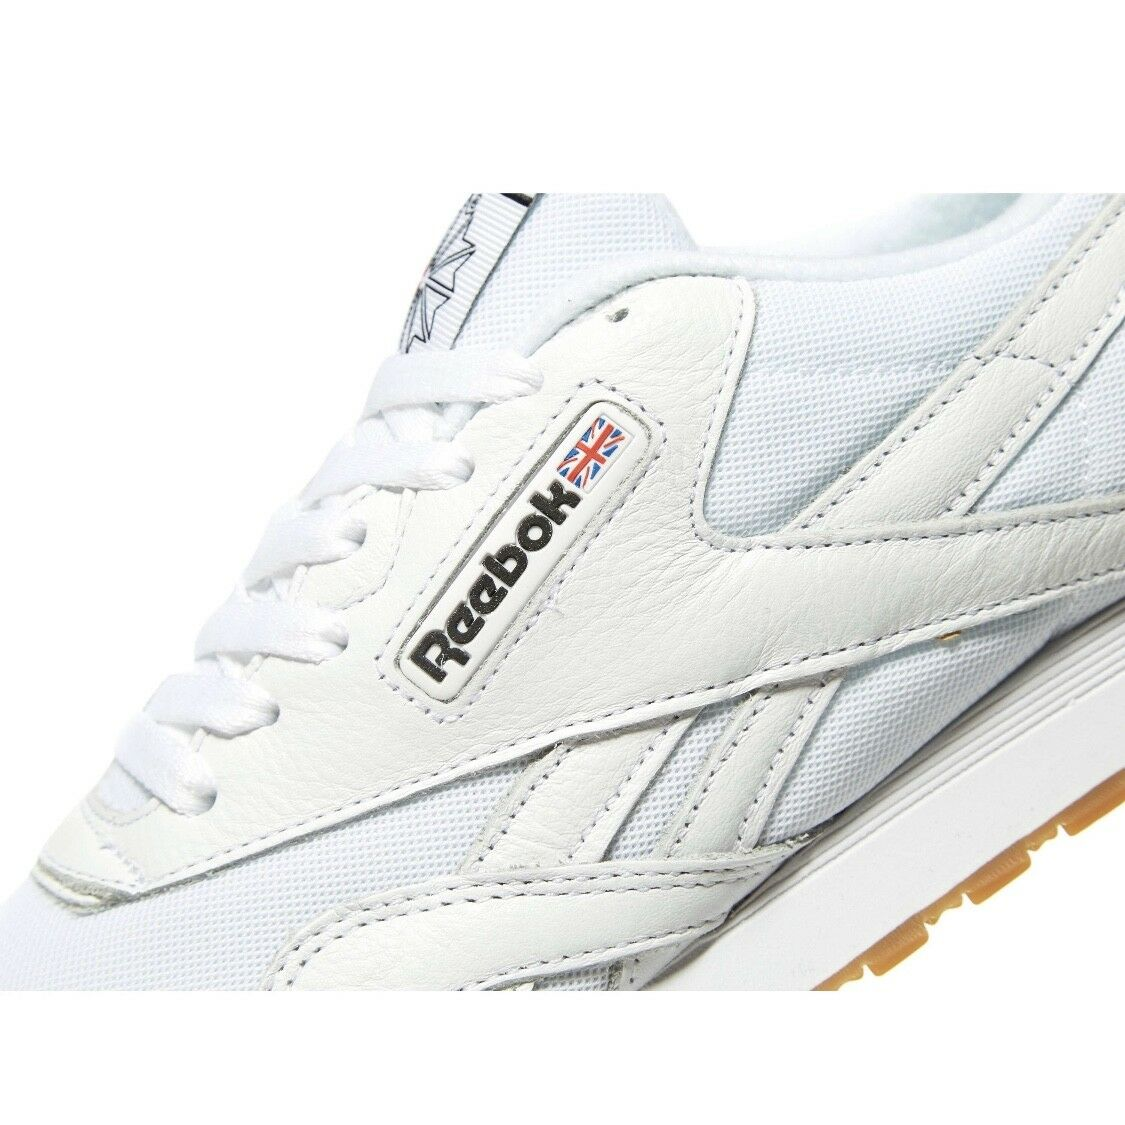 Authentic Reebok Reebok Reebok CL Nylon ® ( Mens Größe UK 8,11 EUR 42,45.5 ) Weiß Leather 2018 a8ad72